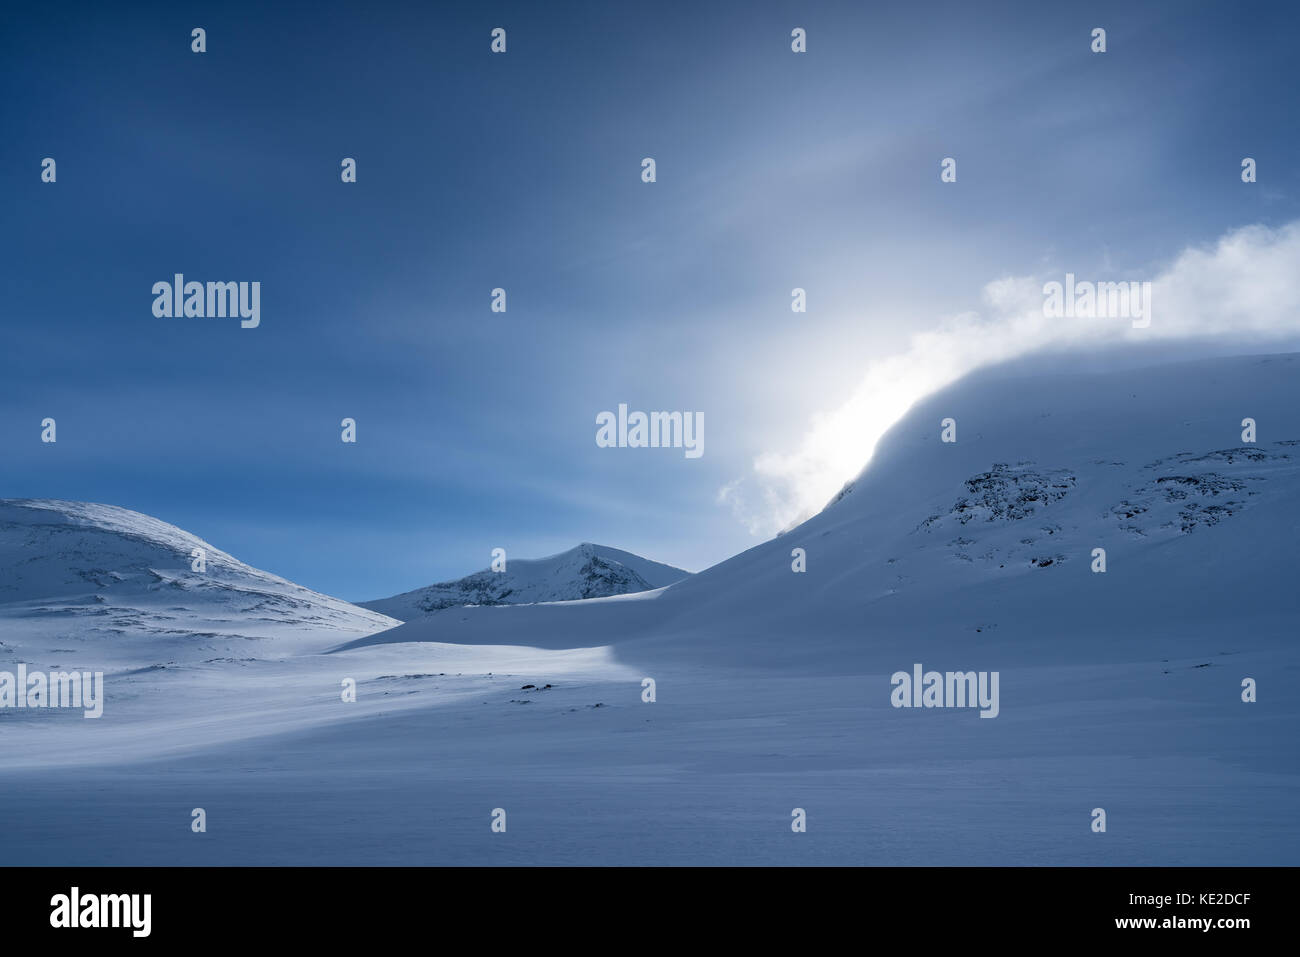 Ski touring in the Kebnekaise massive mountains, Sweden, Europe - Stock Image